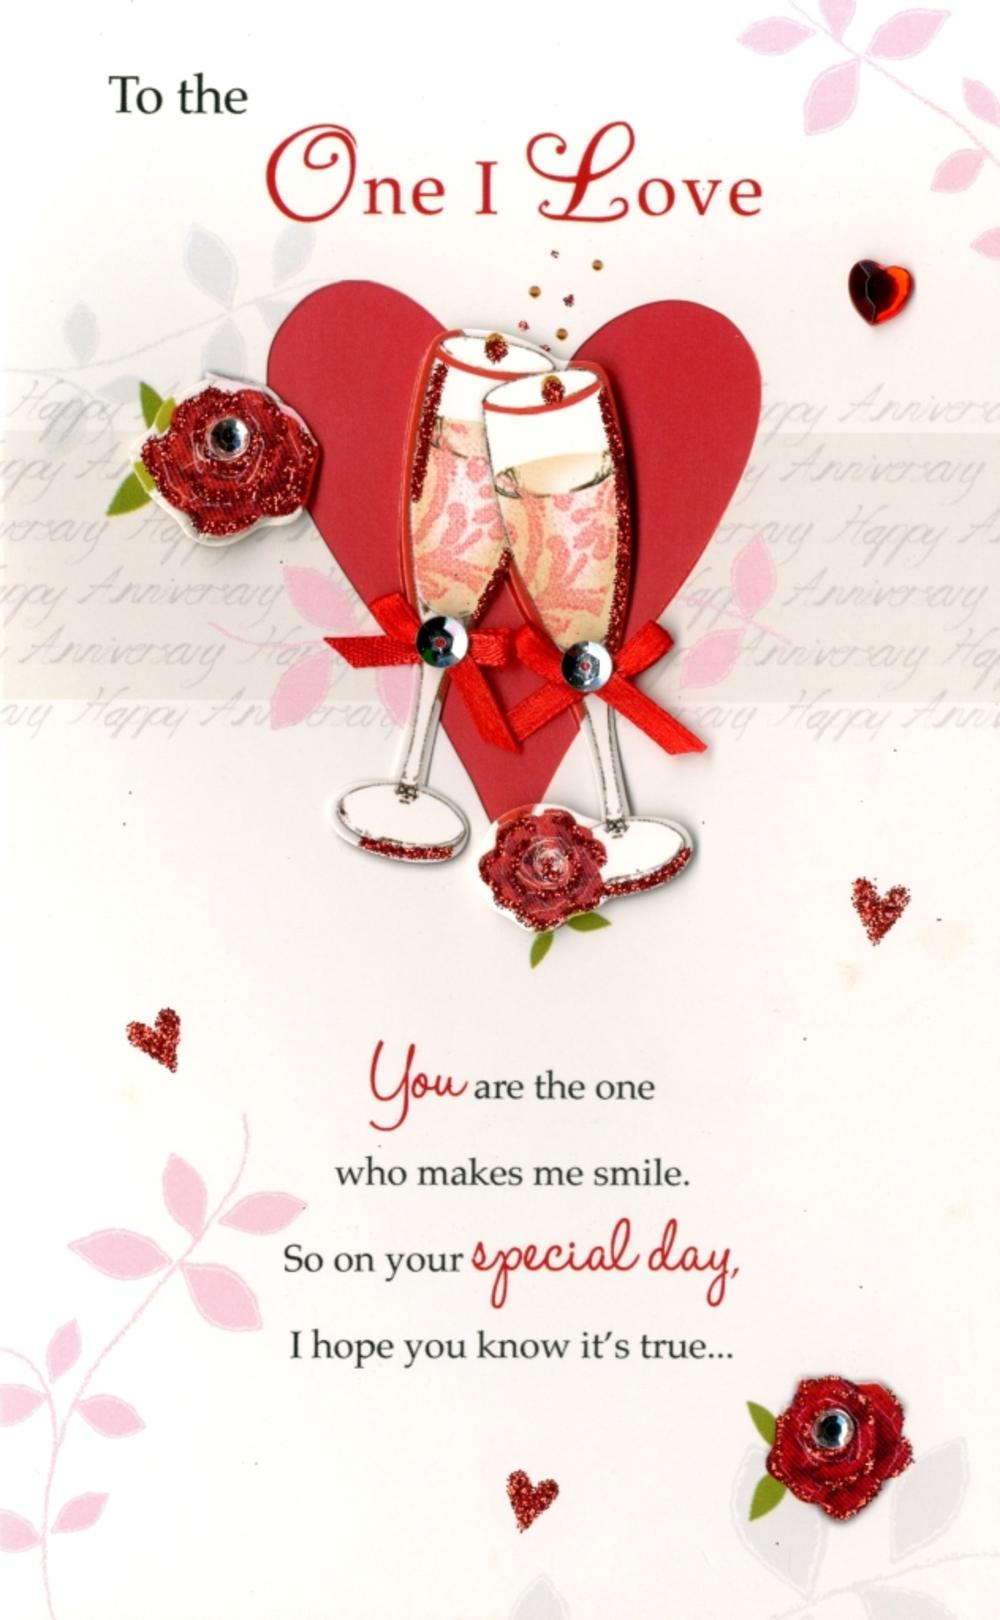 Happy Birthday To The One I Love Greeting Card | Cards ...